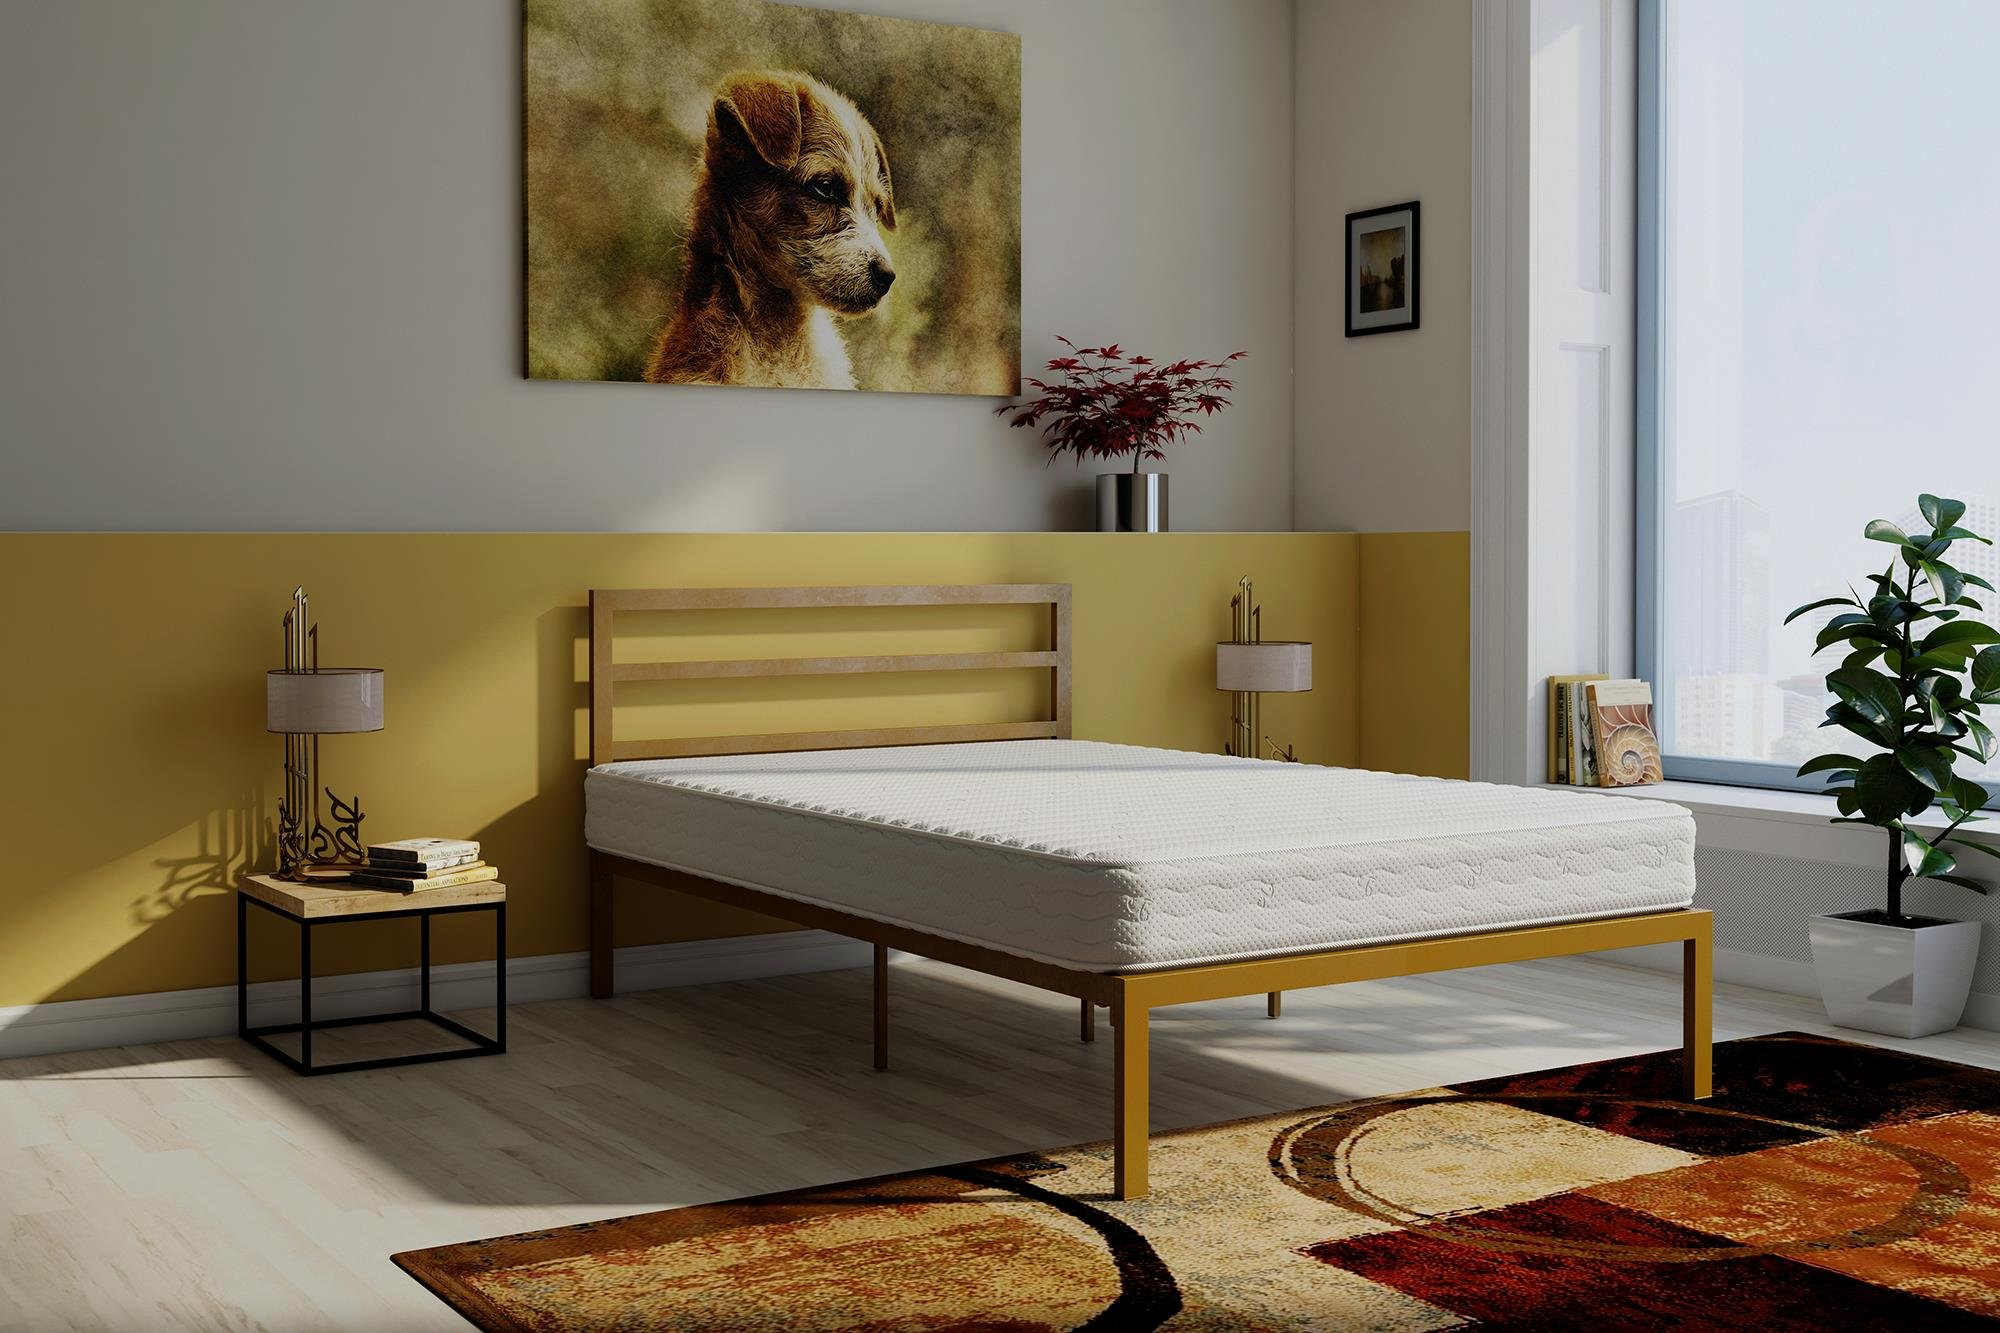 Signature Sleep Contour 8-Inch Reversible Independently Encased Coil Mattress & Premium Modern Platform Full Gold Bed with Headboard Set by Signature Sleep